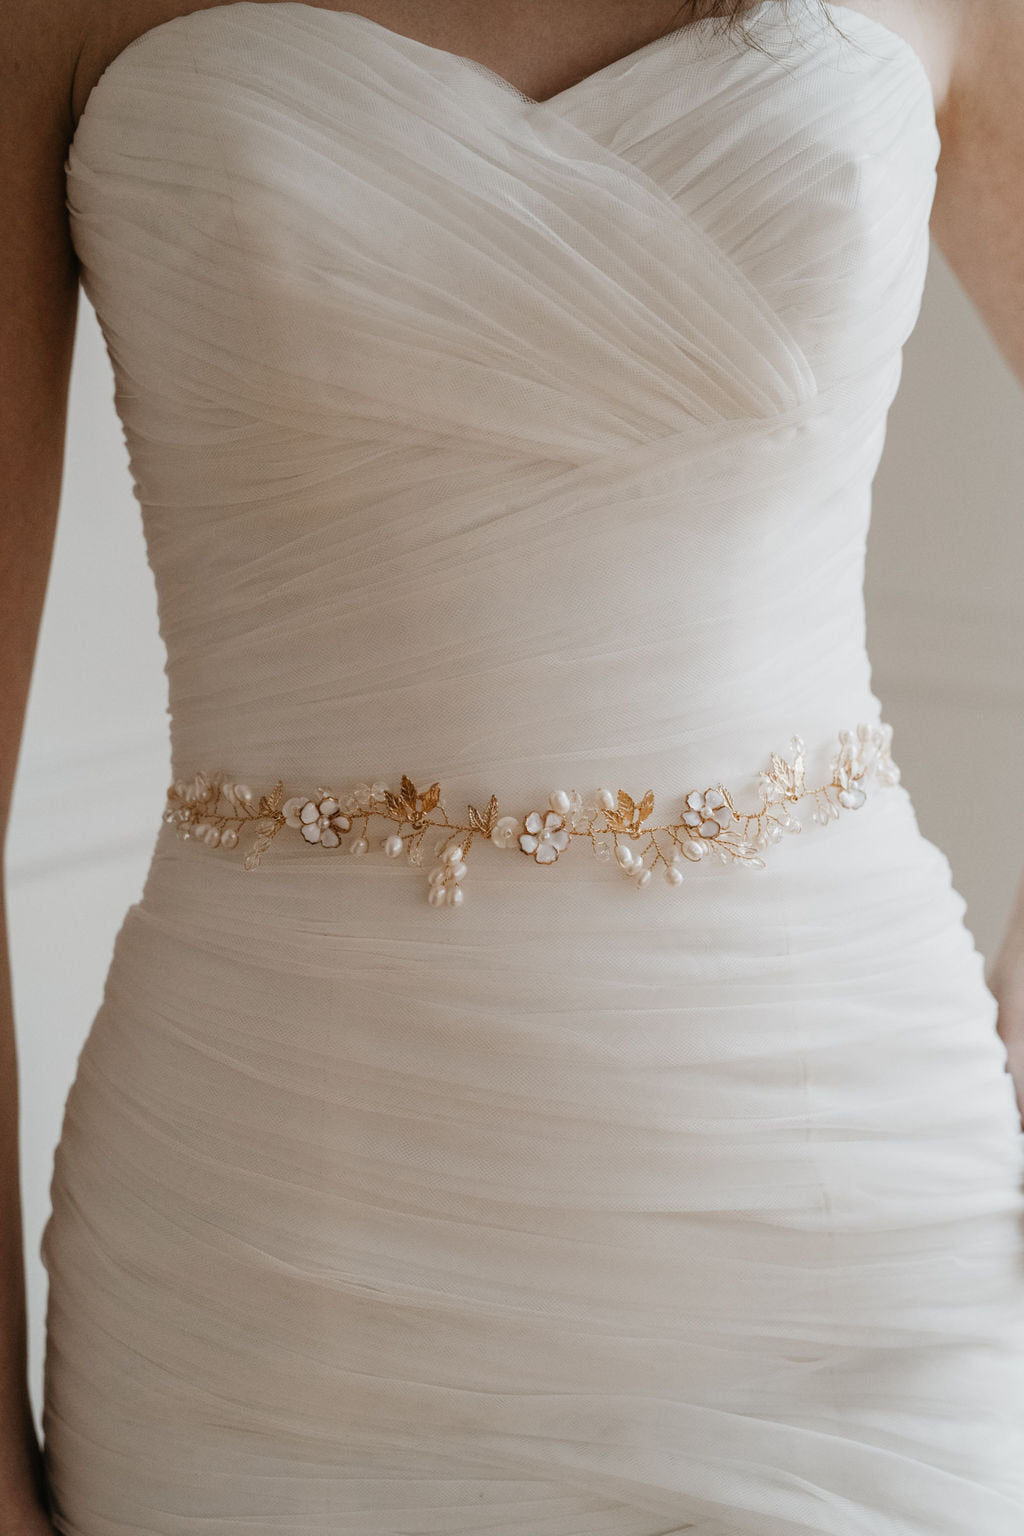 Gold Leaf Bridal Belt Sash